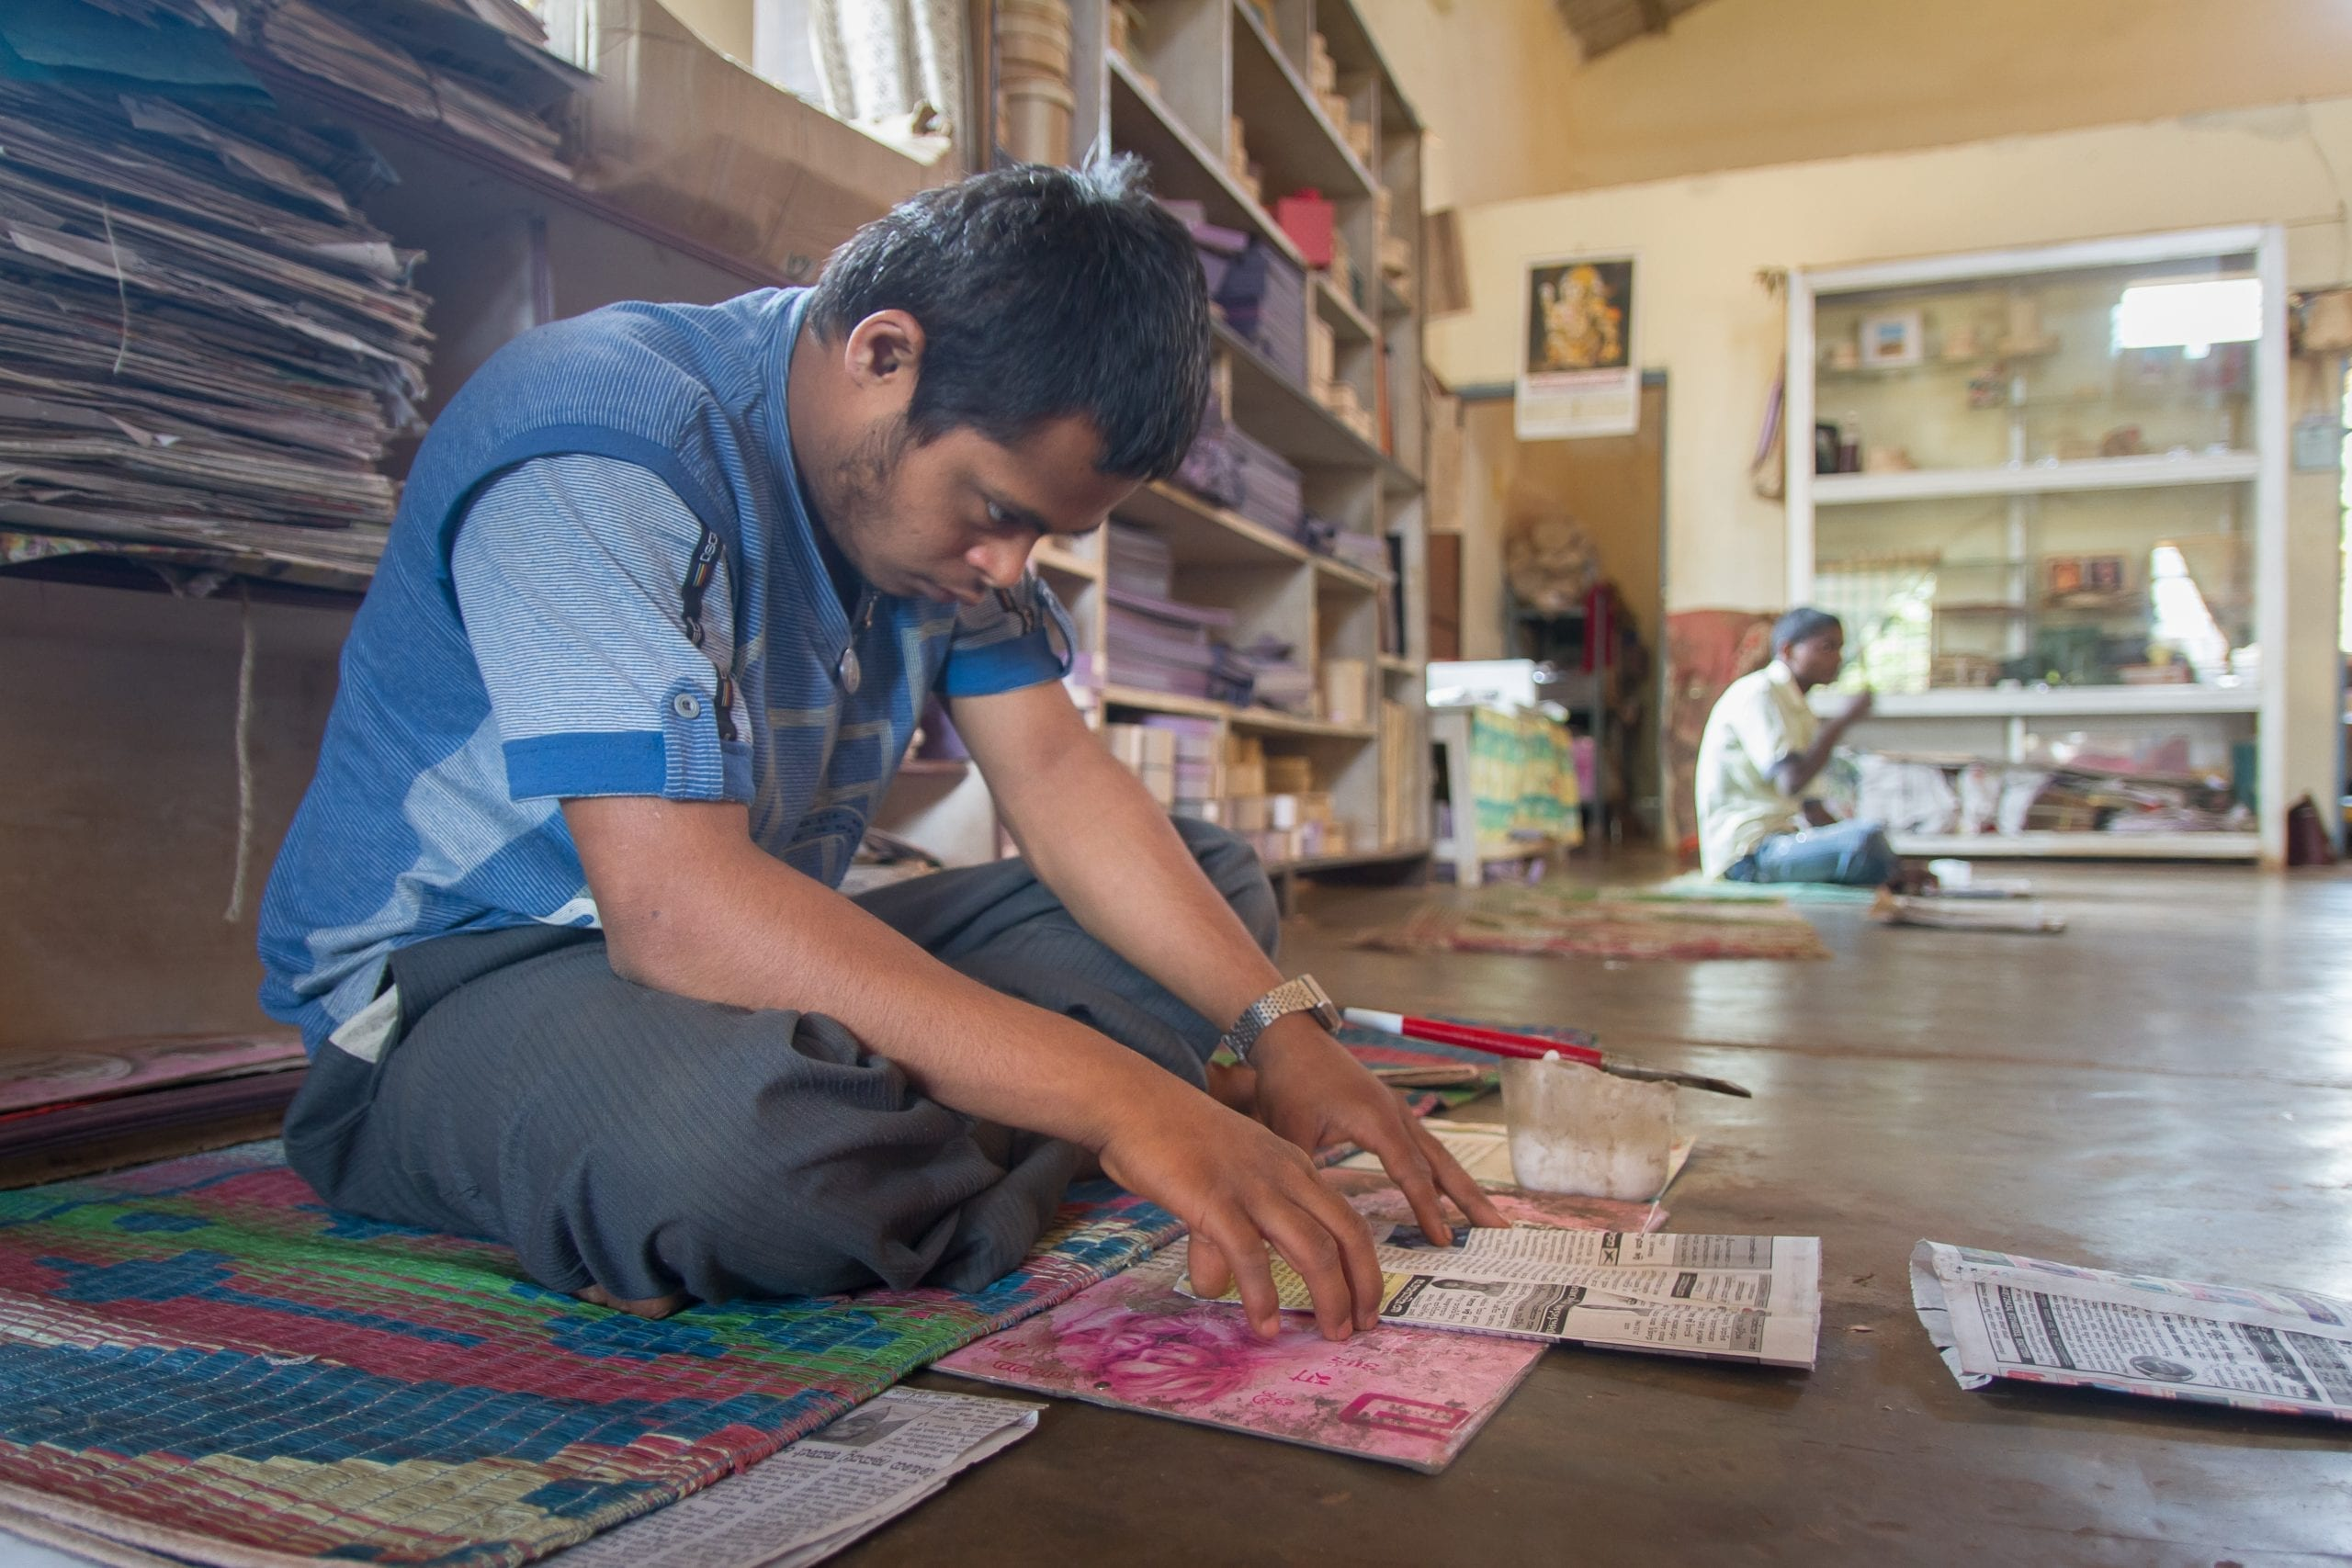 Chetana, a TechnoServe business plan competition winner in southern India, is a thriving business creating meaningful economic opportunities for disabled people in the community.